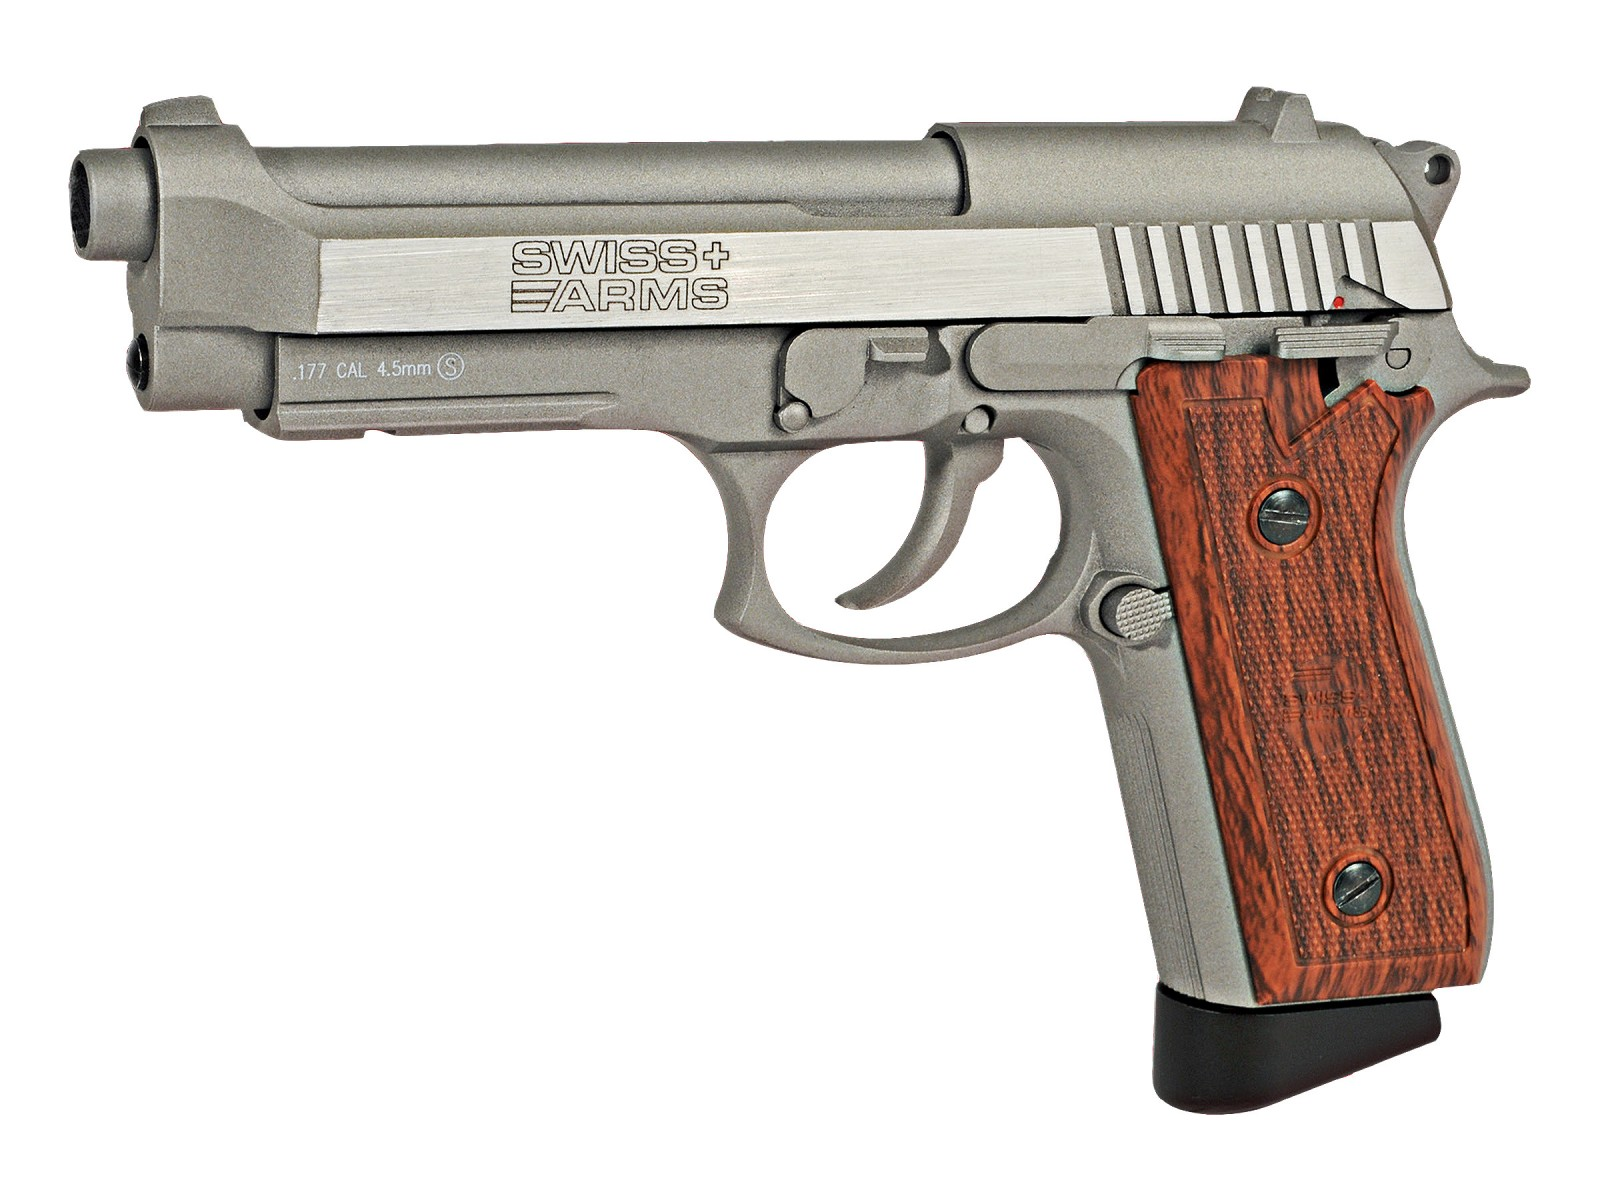 Cheap Swiss Arms SA92 CO2 Stainless Pistol, Brown Grips 0.177